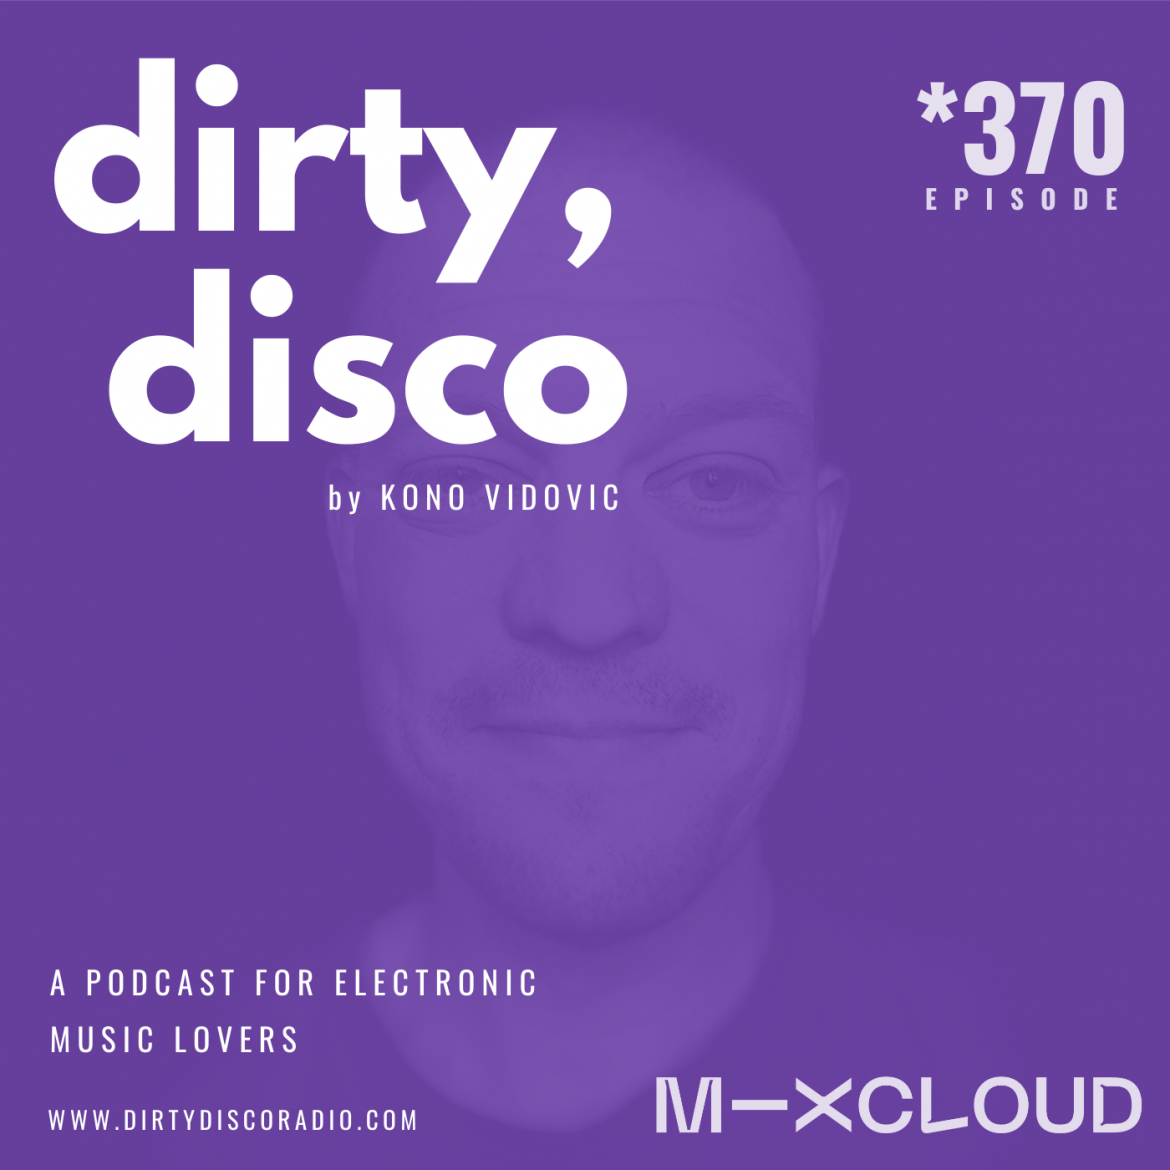 Dance Music Radio Show | Dirty Disco 370